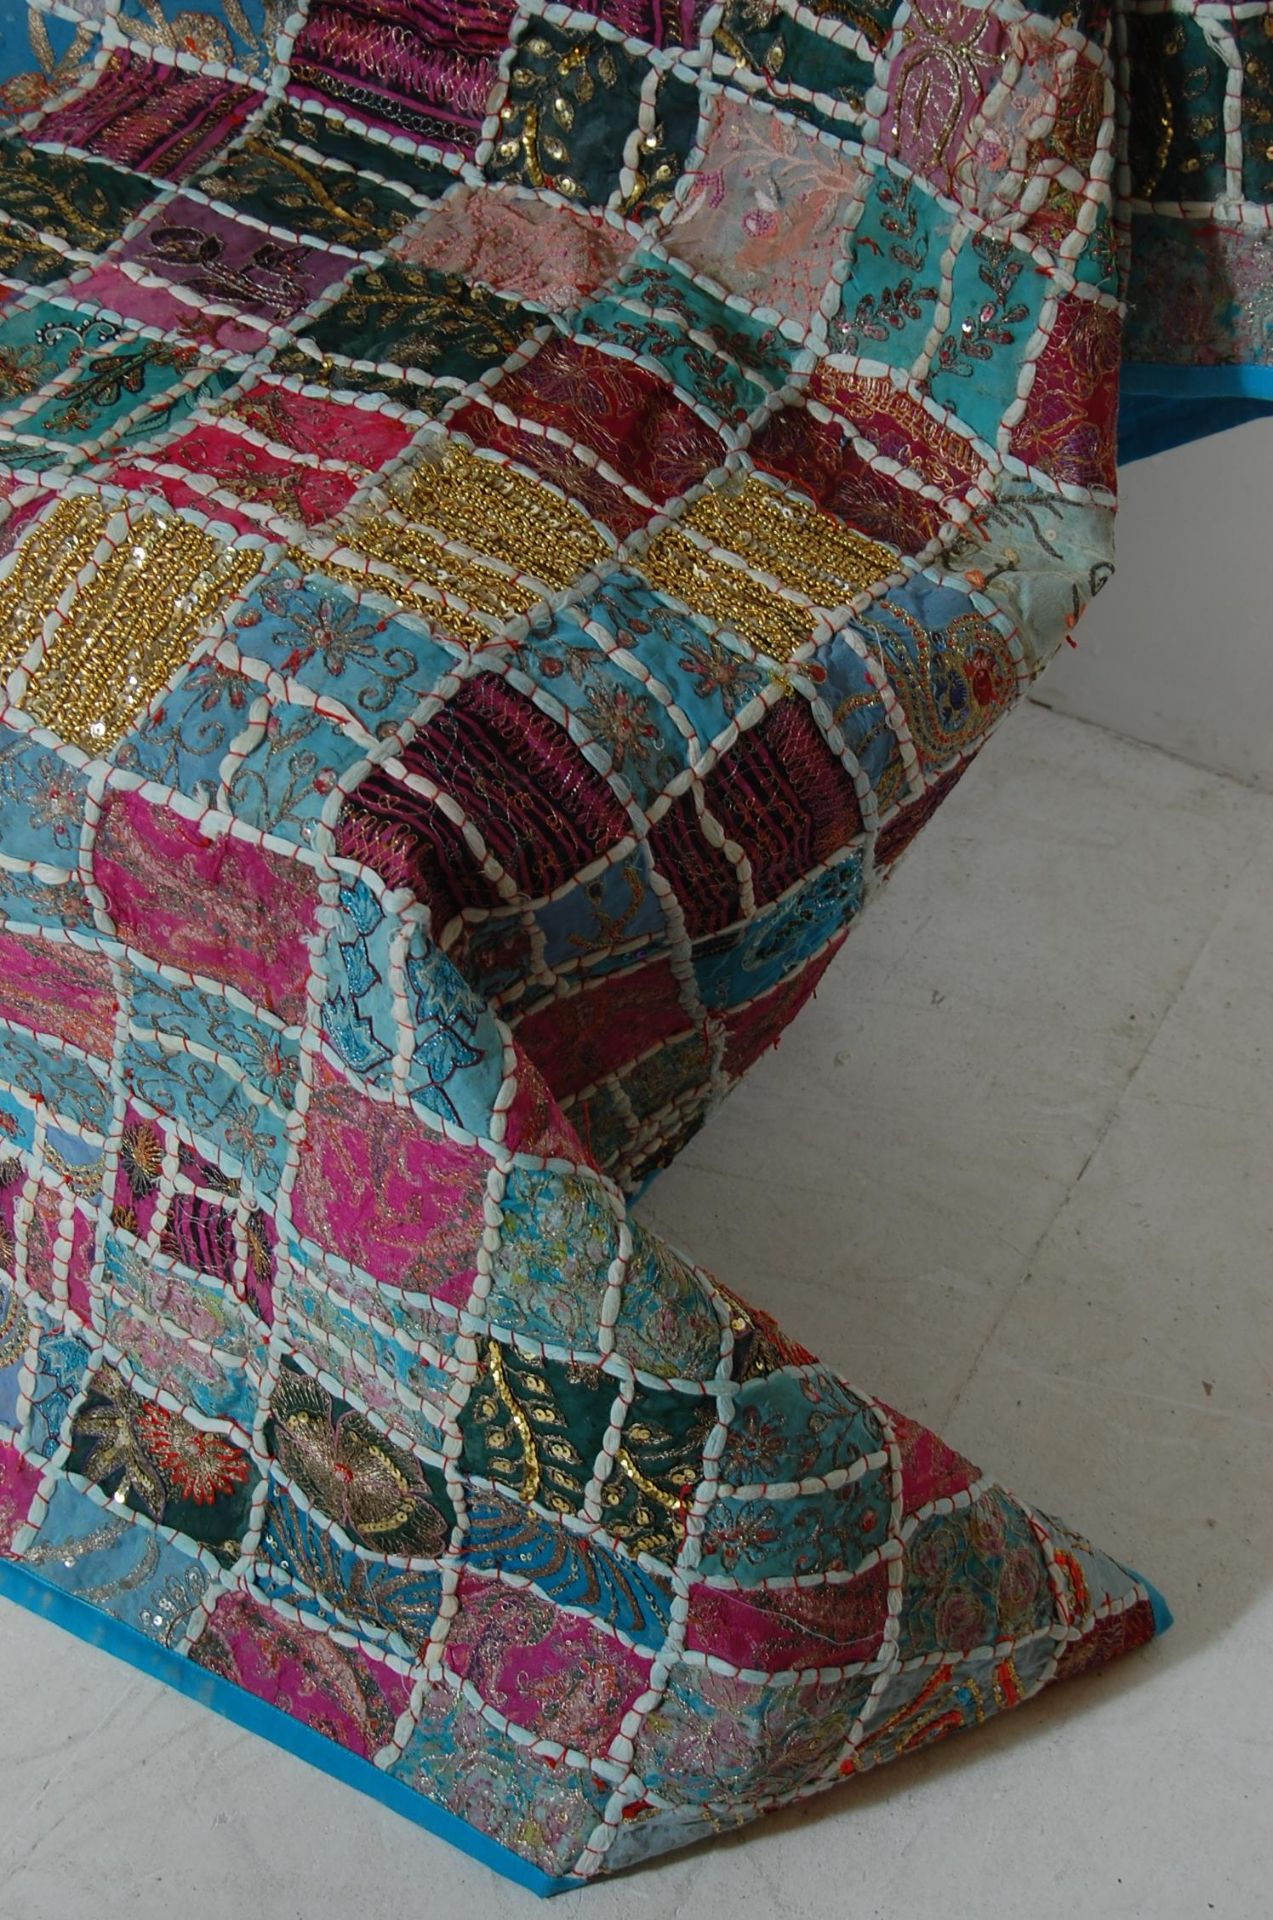 20TH CENTURY ANTIQUE STYLE TRADITIONAL PAKISTANI / RAJASTHANI / INDIAN PATCHWORK QUILT BED THROW - Image 6 of 11